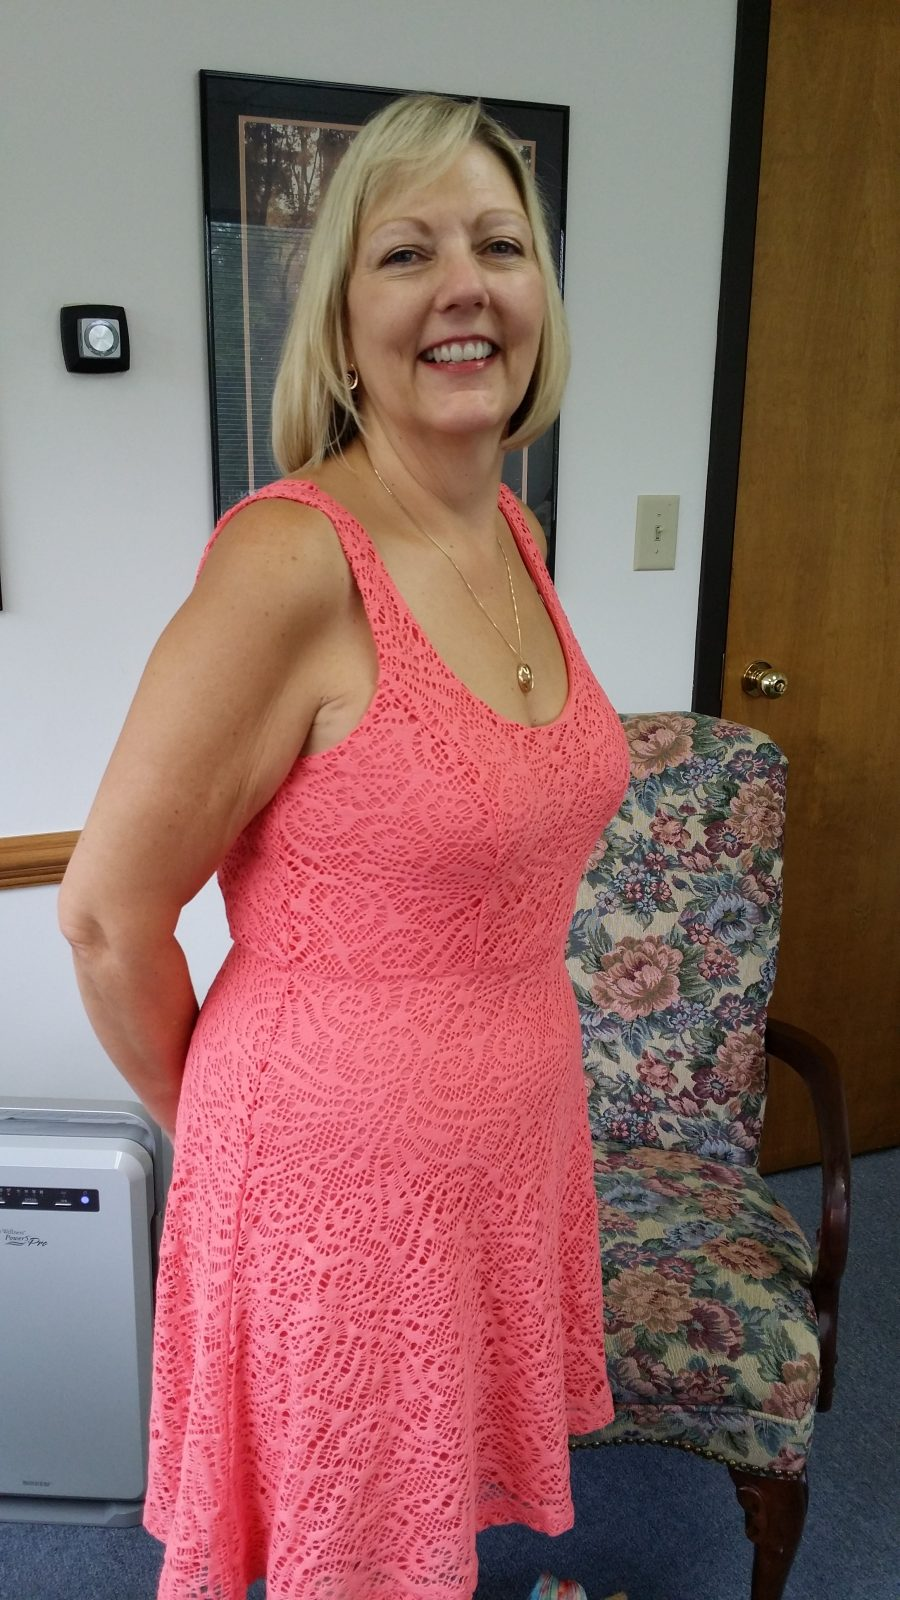 Weightloss Clinic in Apex NC